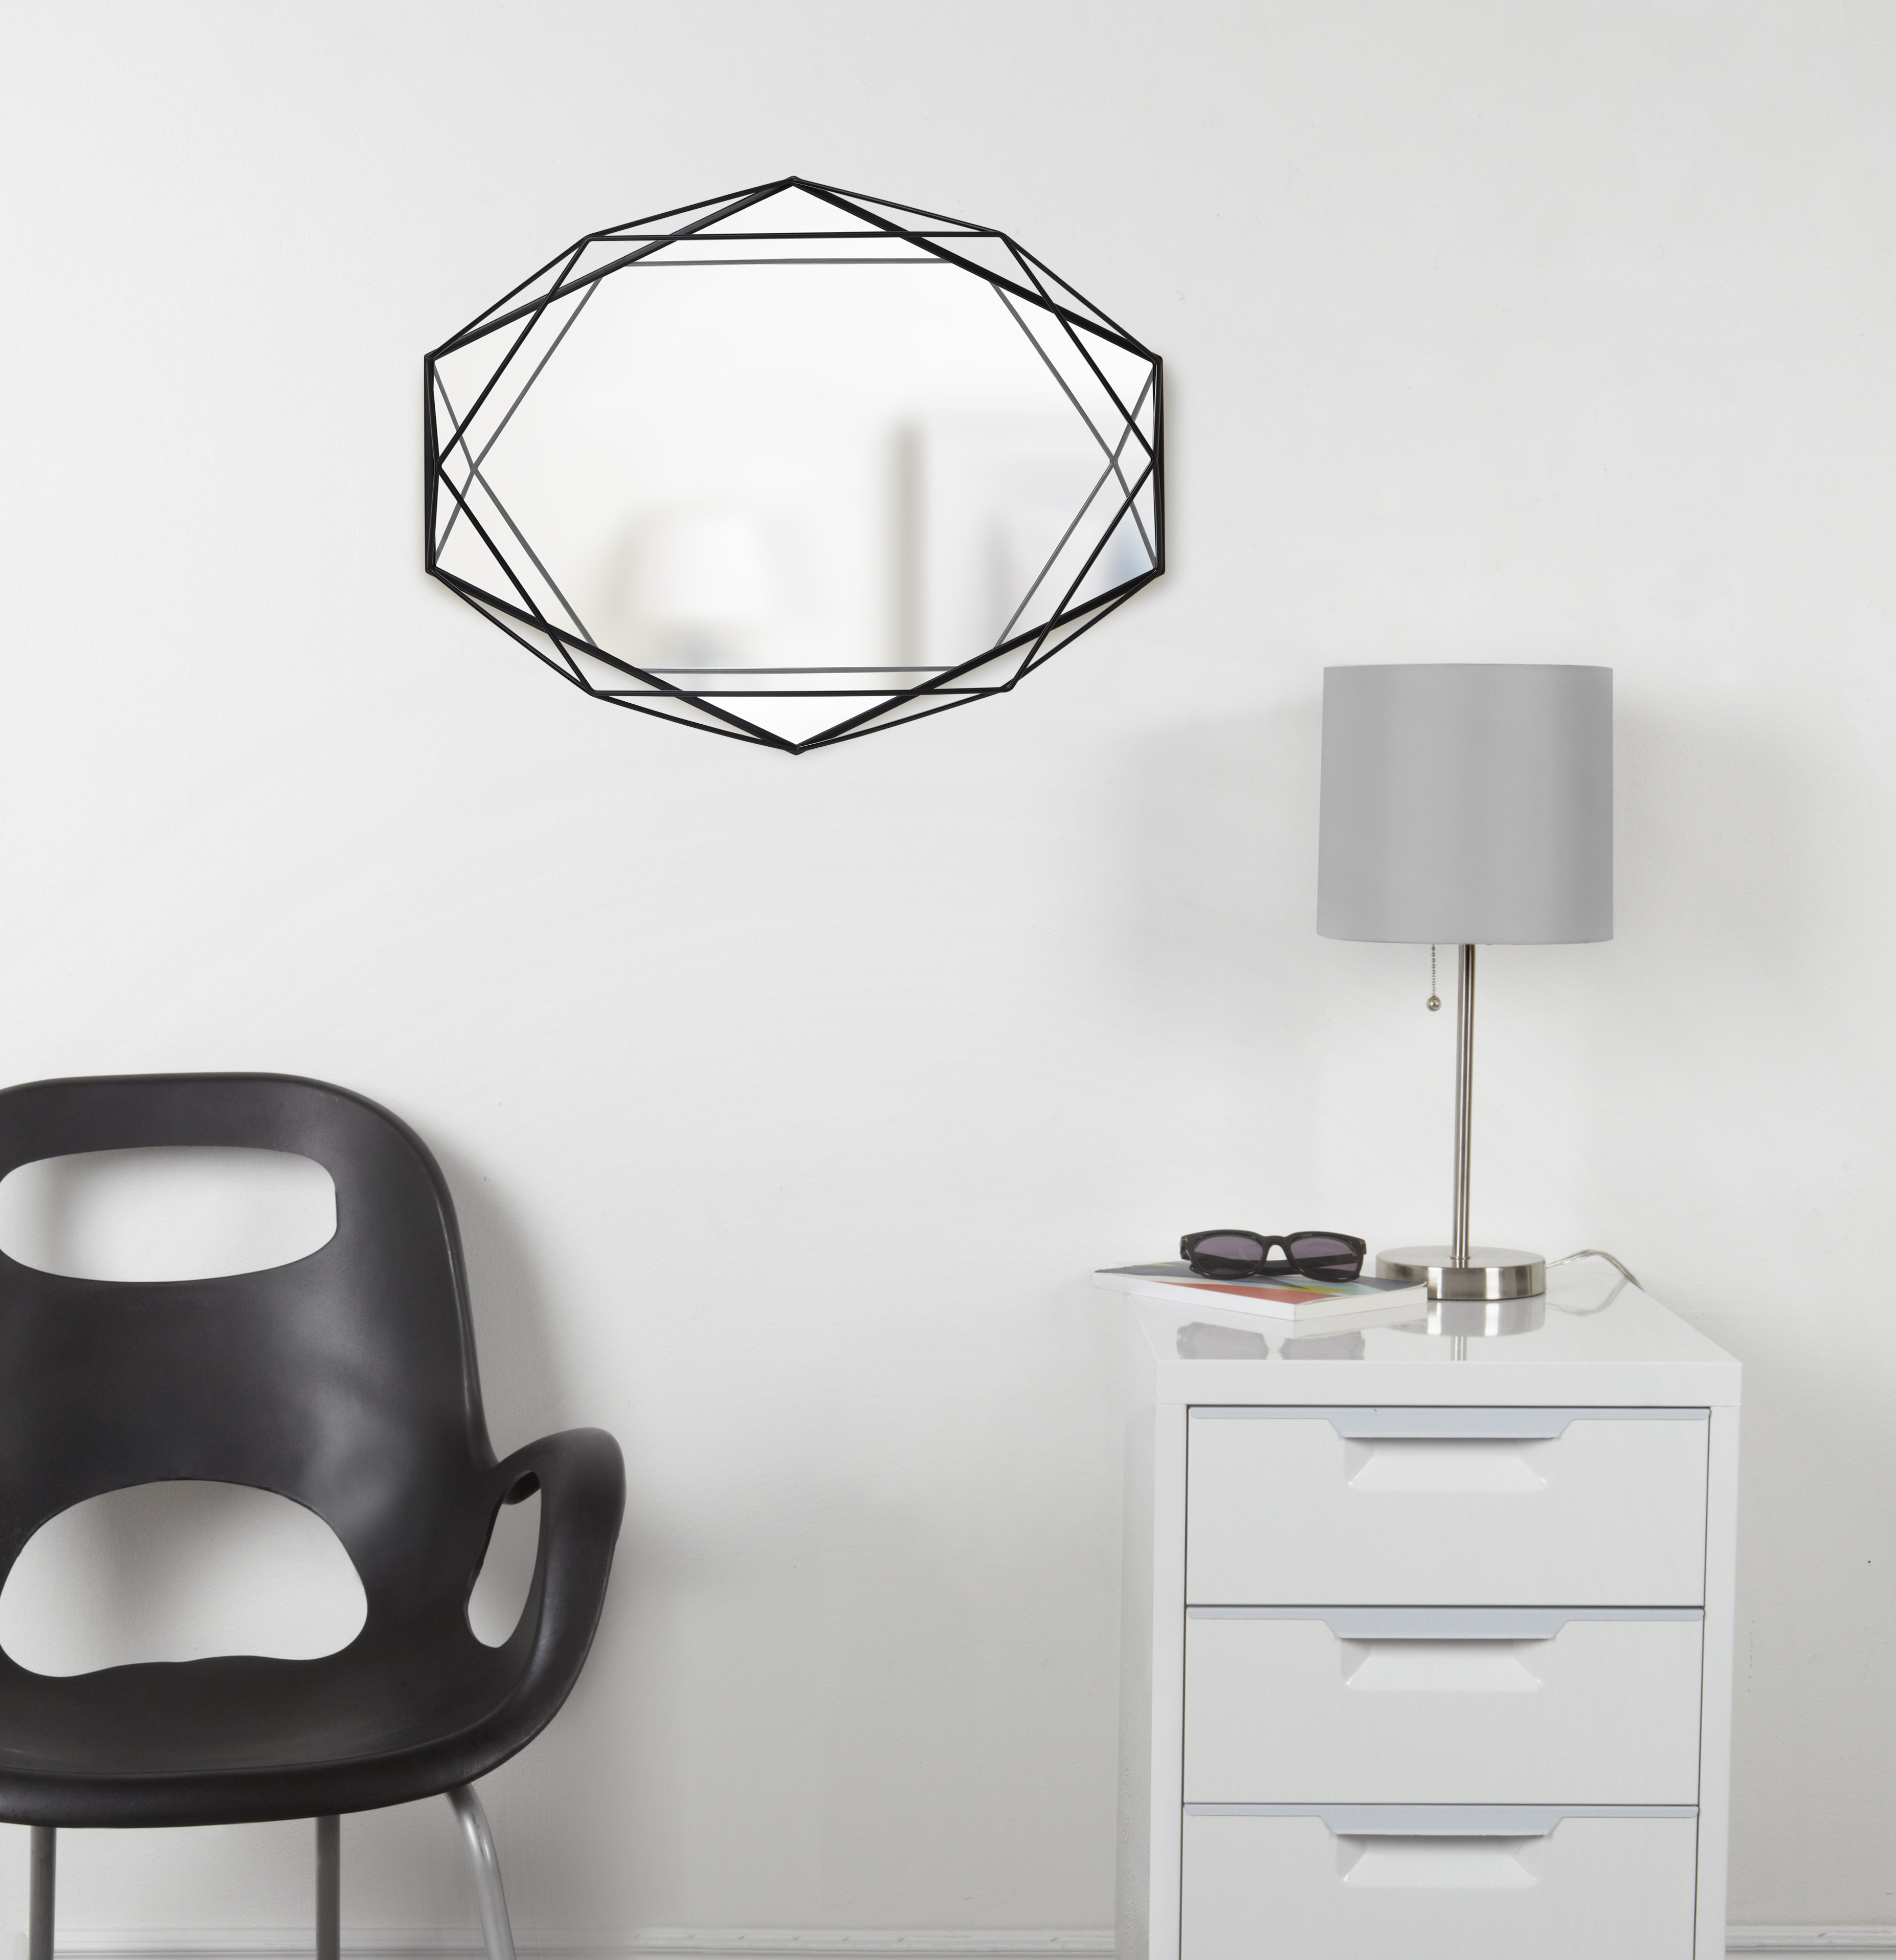 Prisma Modern & Contemporary Accent Mirror & Reviews | Joss Regarding Guidinha Modern & Contemporary Accent Mirrors (Image 17 of 20)